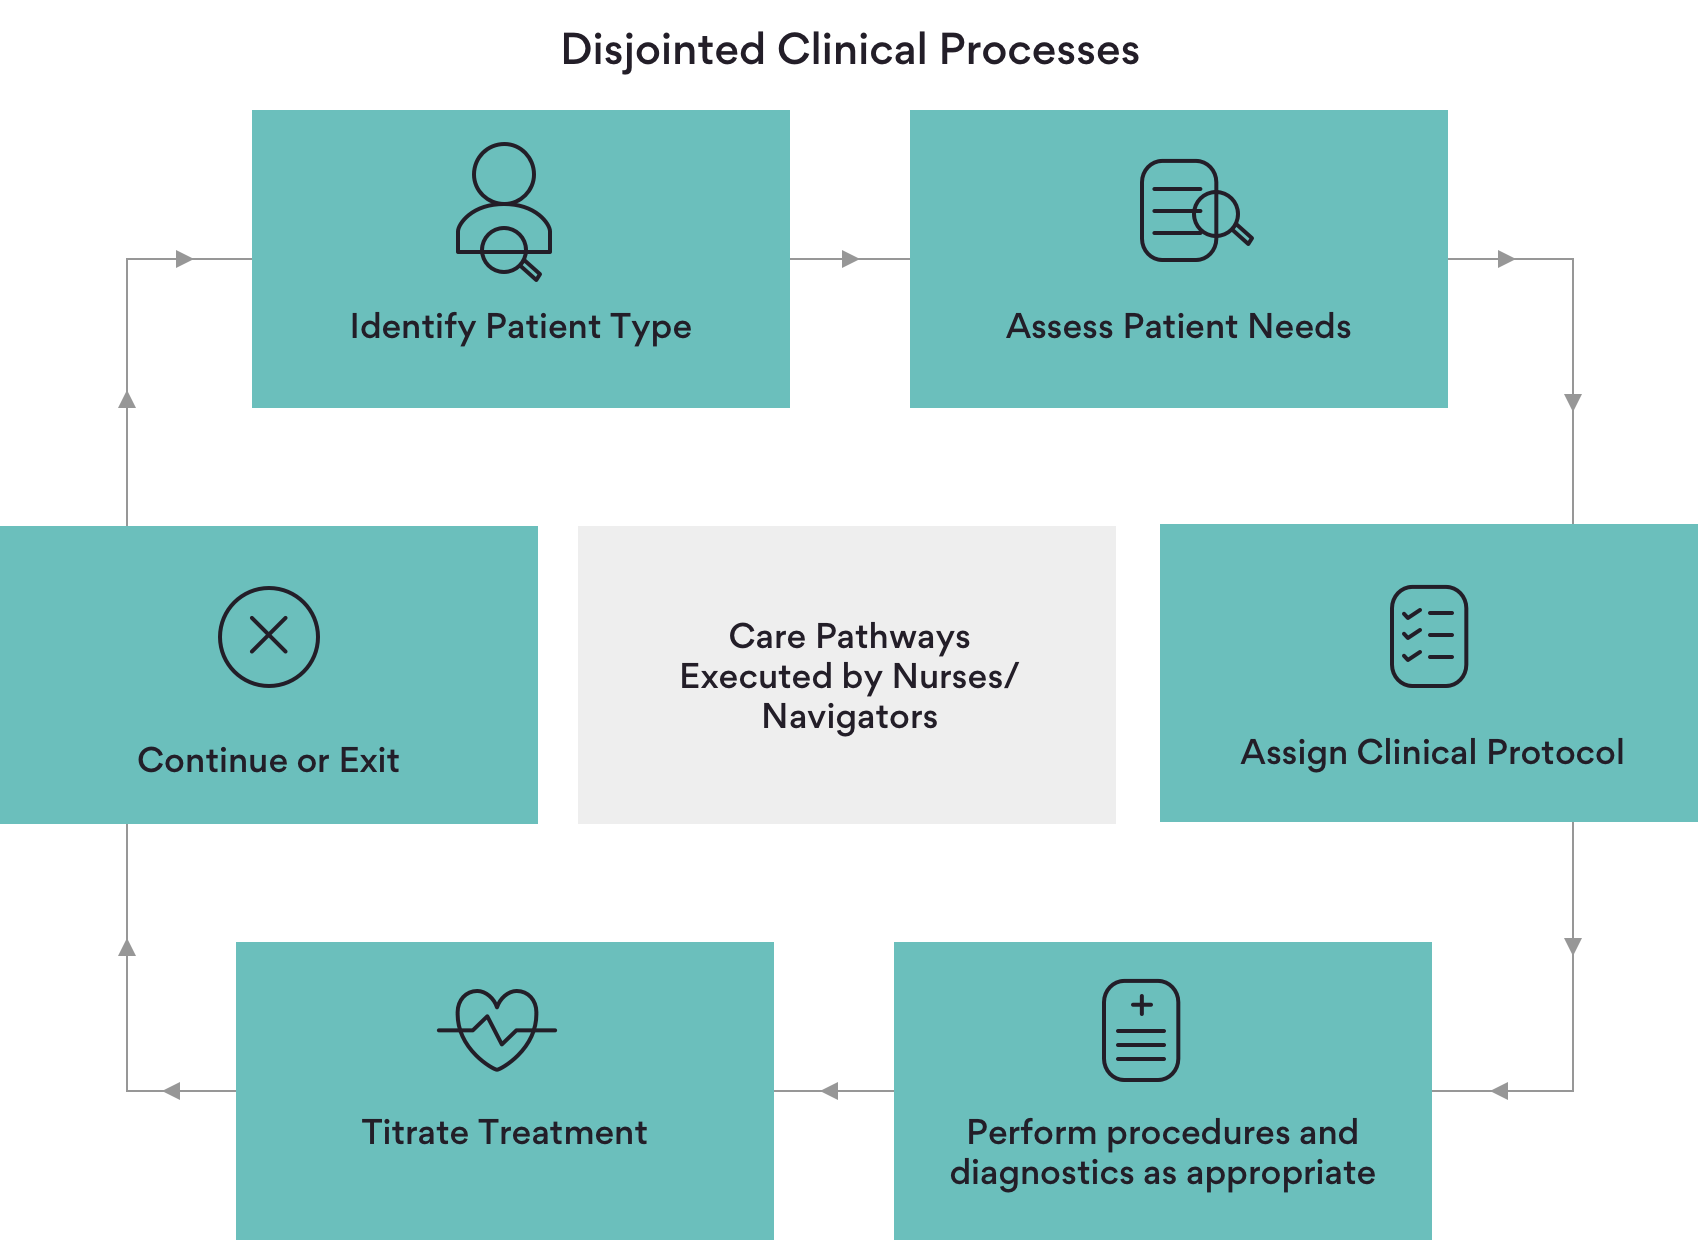 Redesigning clinical operations with Digital Care Pathways